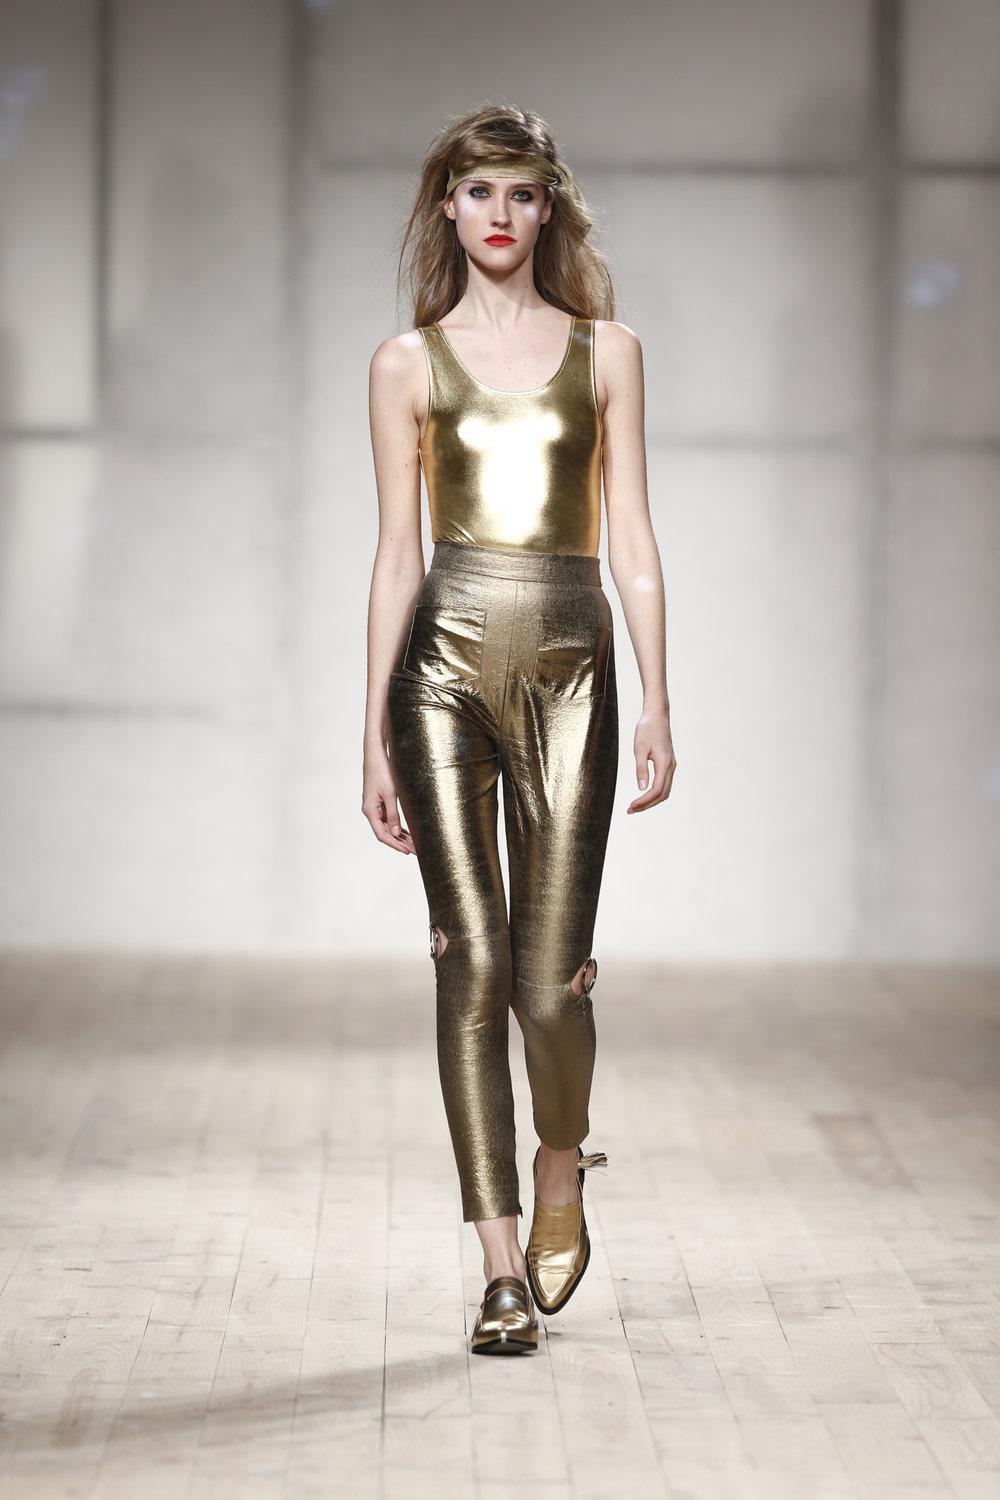 golden trousers   One available size 36 Original Price 232€ | Discount Price 116€ Ref. LCss17s03